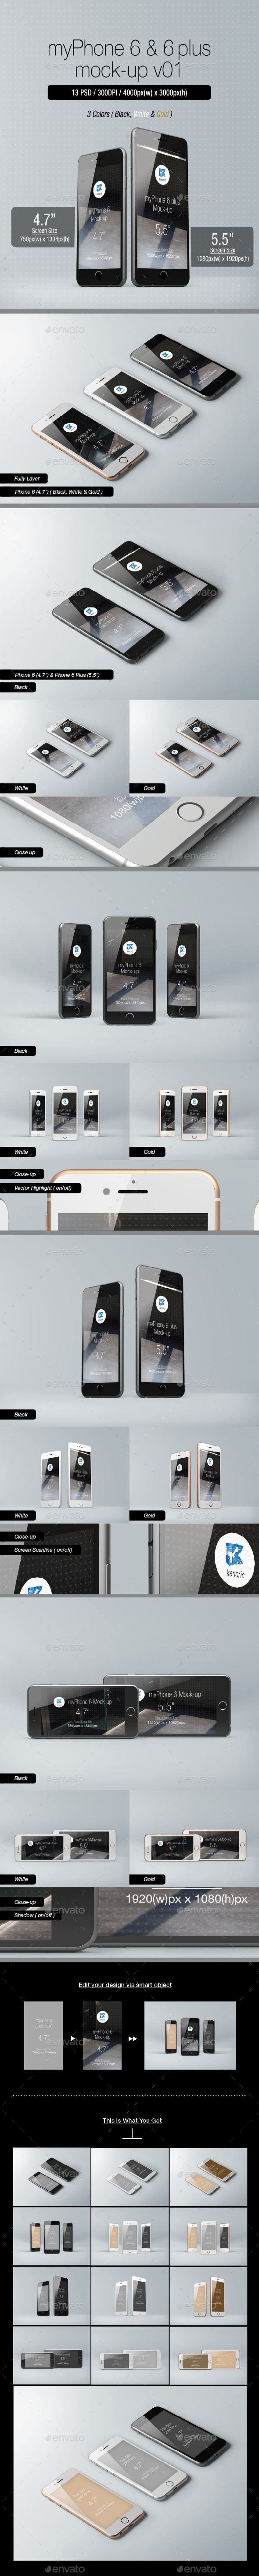 myPhone 6 Mock-up v01 - Mobile Displays